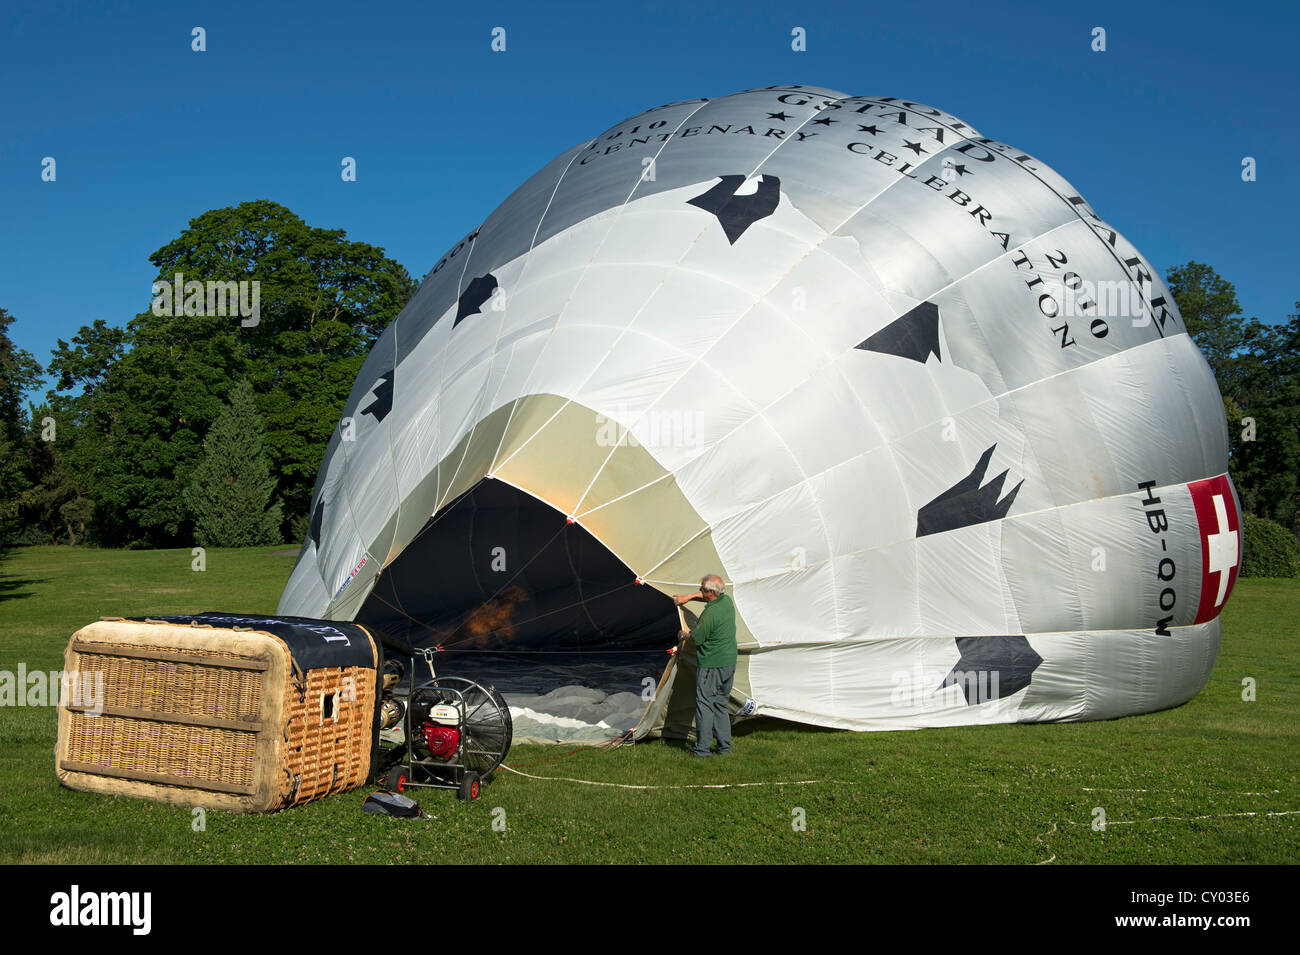 Launch preparations for the hot air balloon HP QOW Cameron Z-120 of the Grand Hotel Park Gstaad, hot air created - Stock Image